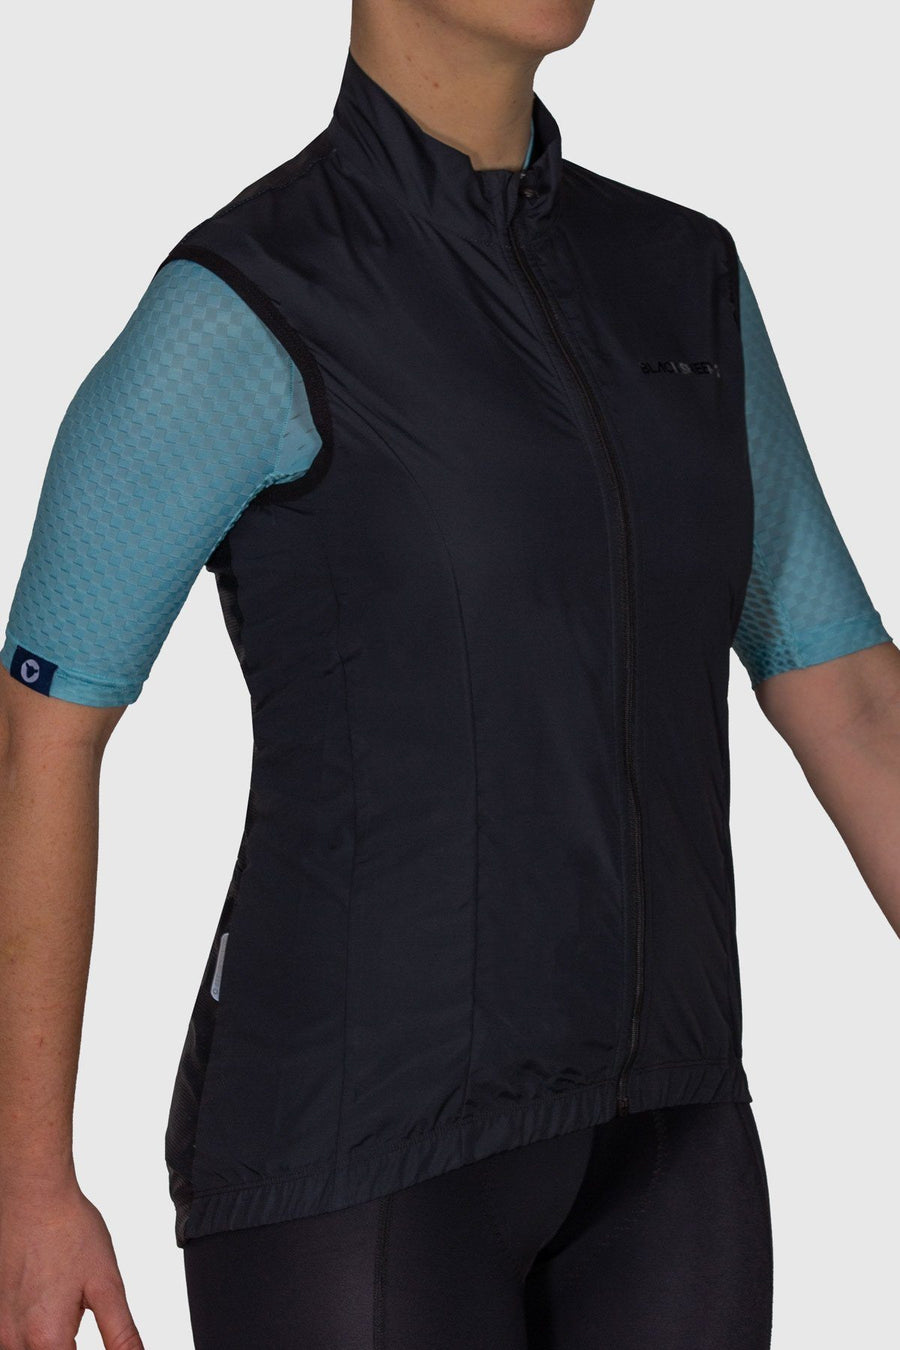 Euro Collection Women's Black Wind Vest